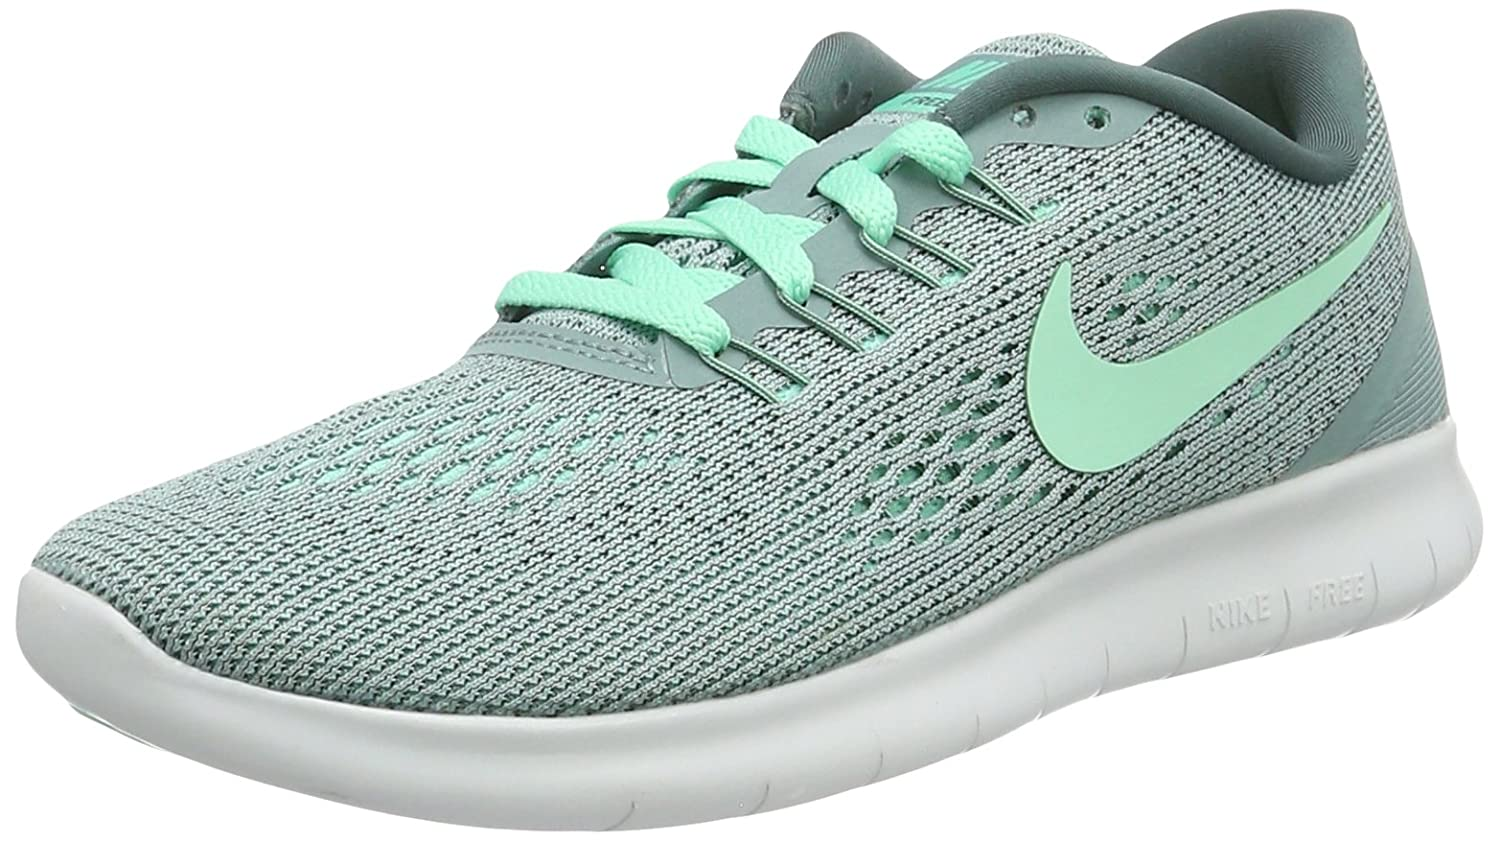 reputable site 6e7a9 bb8fb Nike 831509-004, Sneakers Trail-Running Femme  Amazon.fr  Chaussures et Sacs